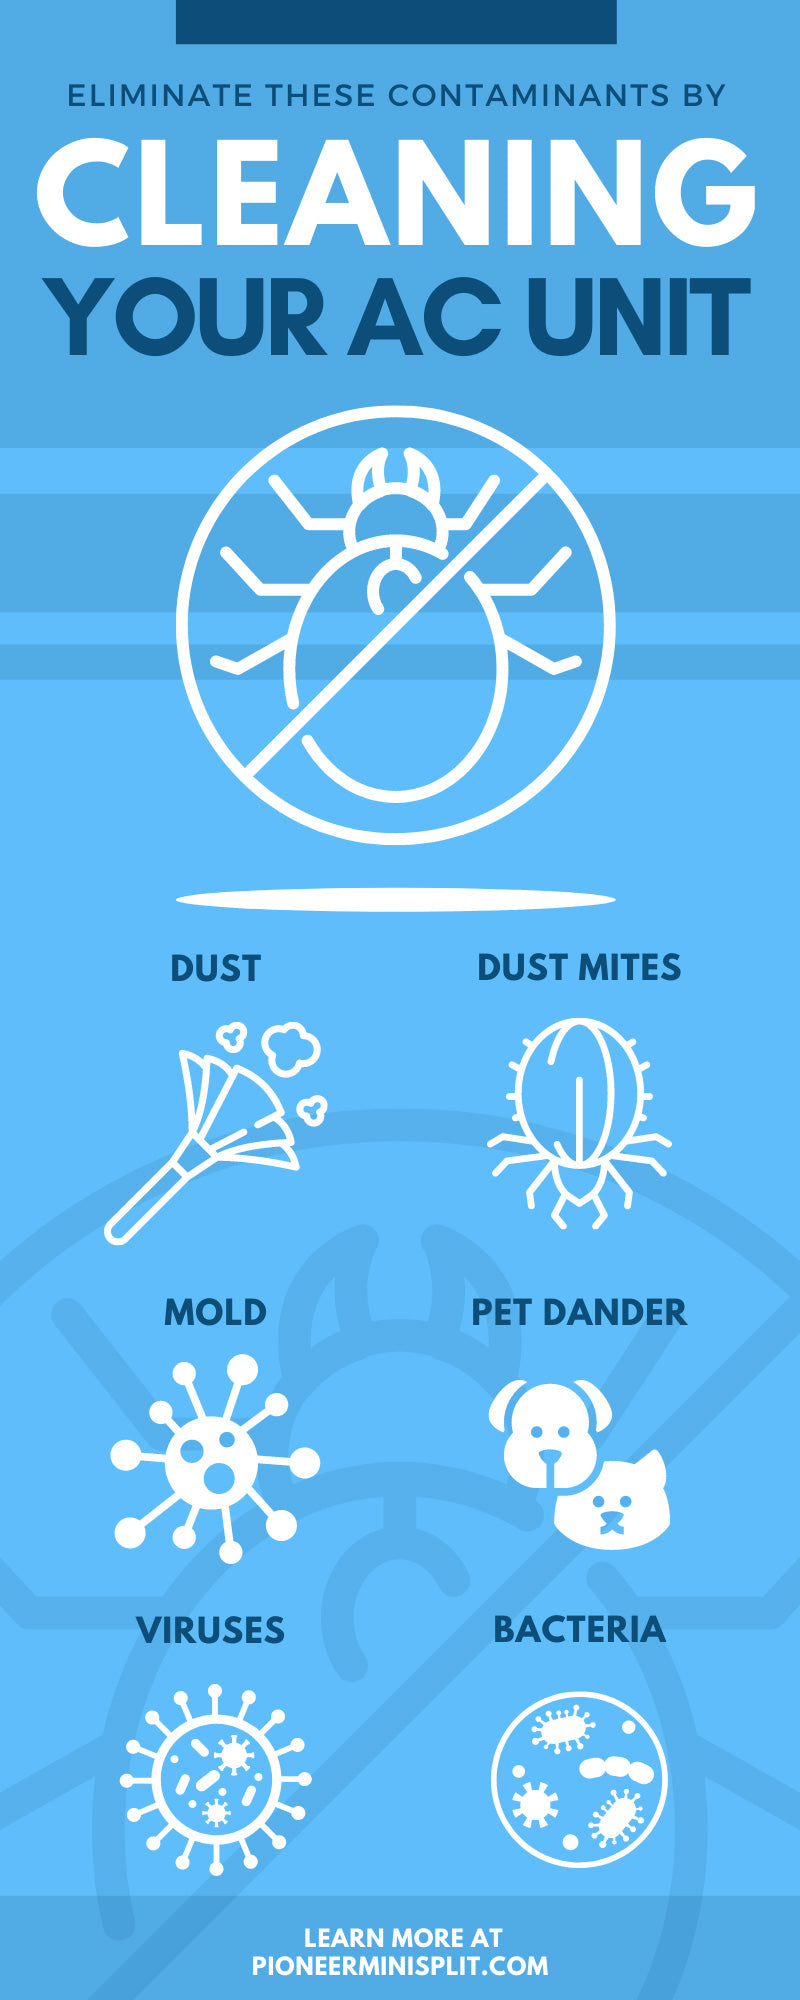 Eliminate These Contaminants by Cleaning Your AC Unit